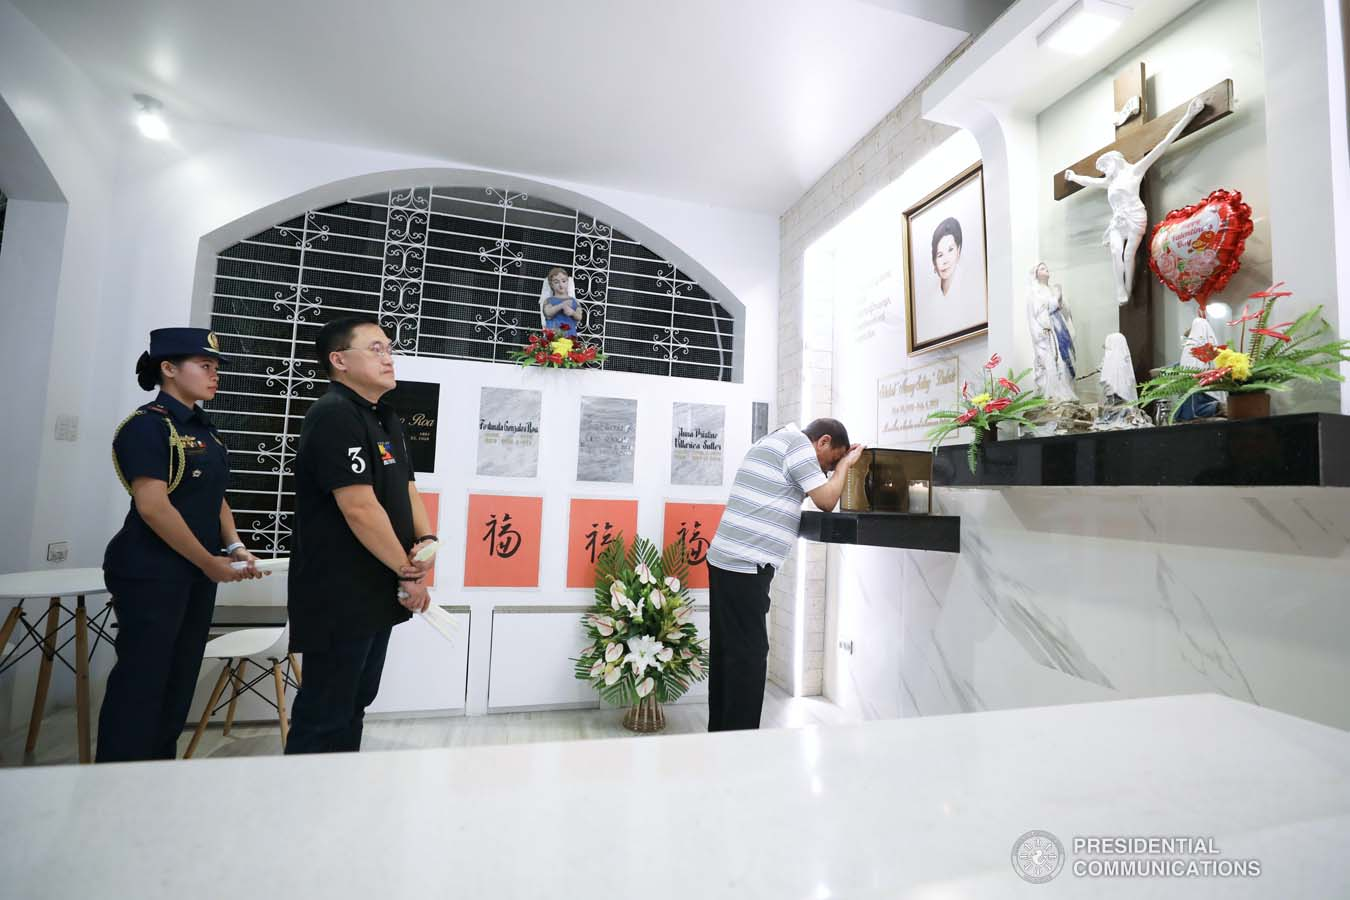 President Rodrigo Roa Duterte takes a solemn moment to commemorate the 52nd death anniversary of his father, Vicente Duterte, at the Roman Catholic Cemetery in Davao City on February 21, 2020. KARL NORMAN ALONZO/PRESIDENTIAL PHOTO